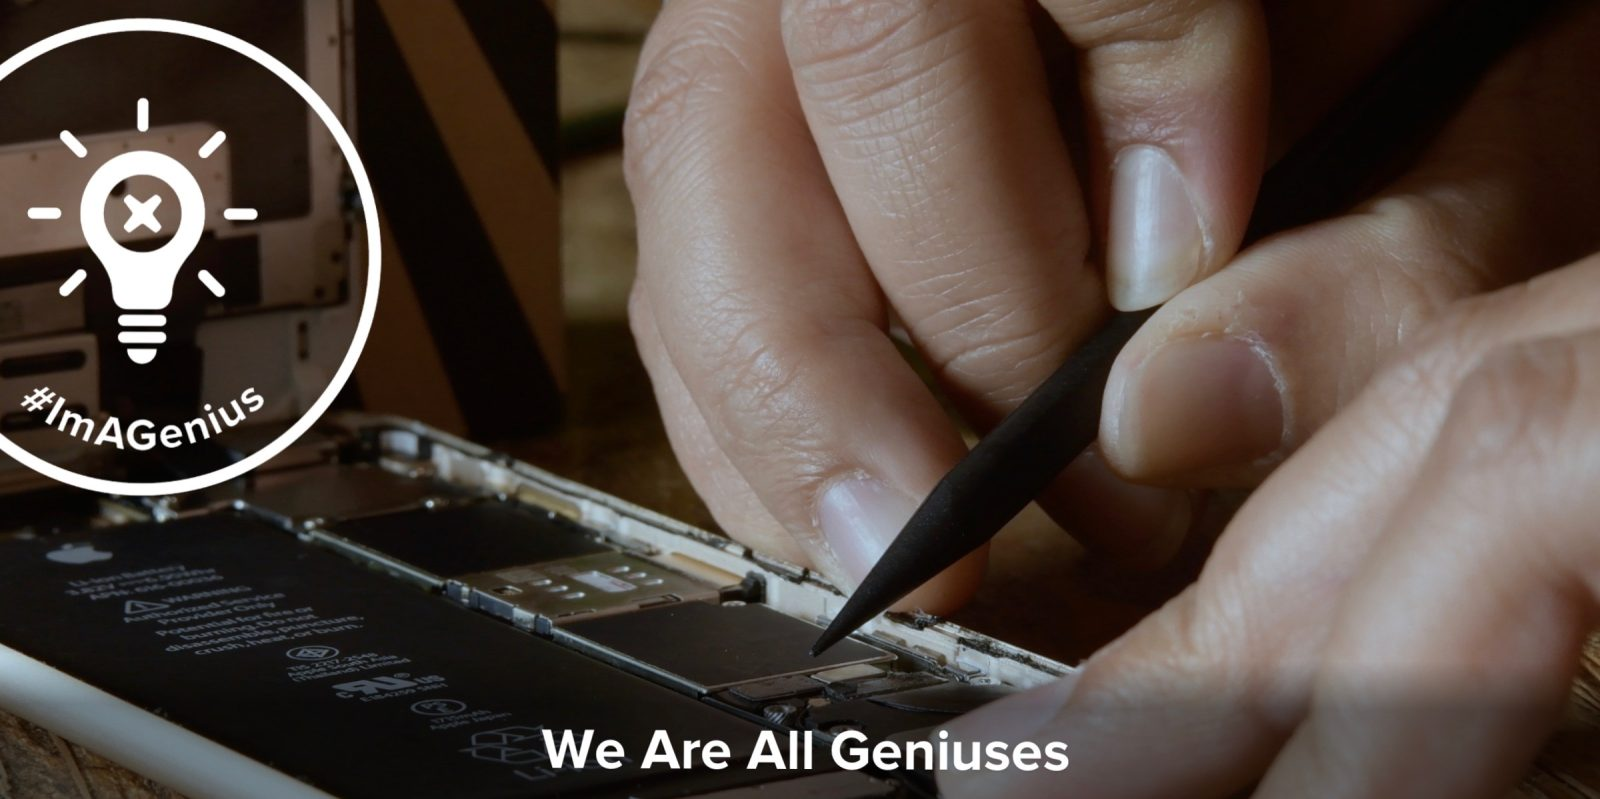 IFixit Launches 'I'm a Genius' Campaign to Encourage Users to Repair their own Devices